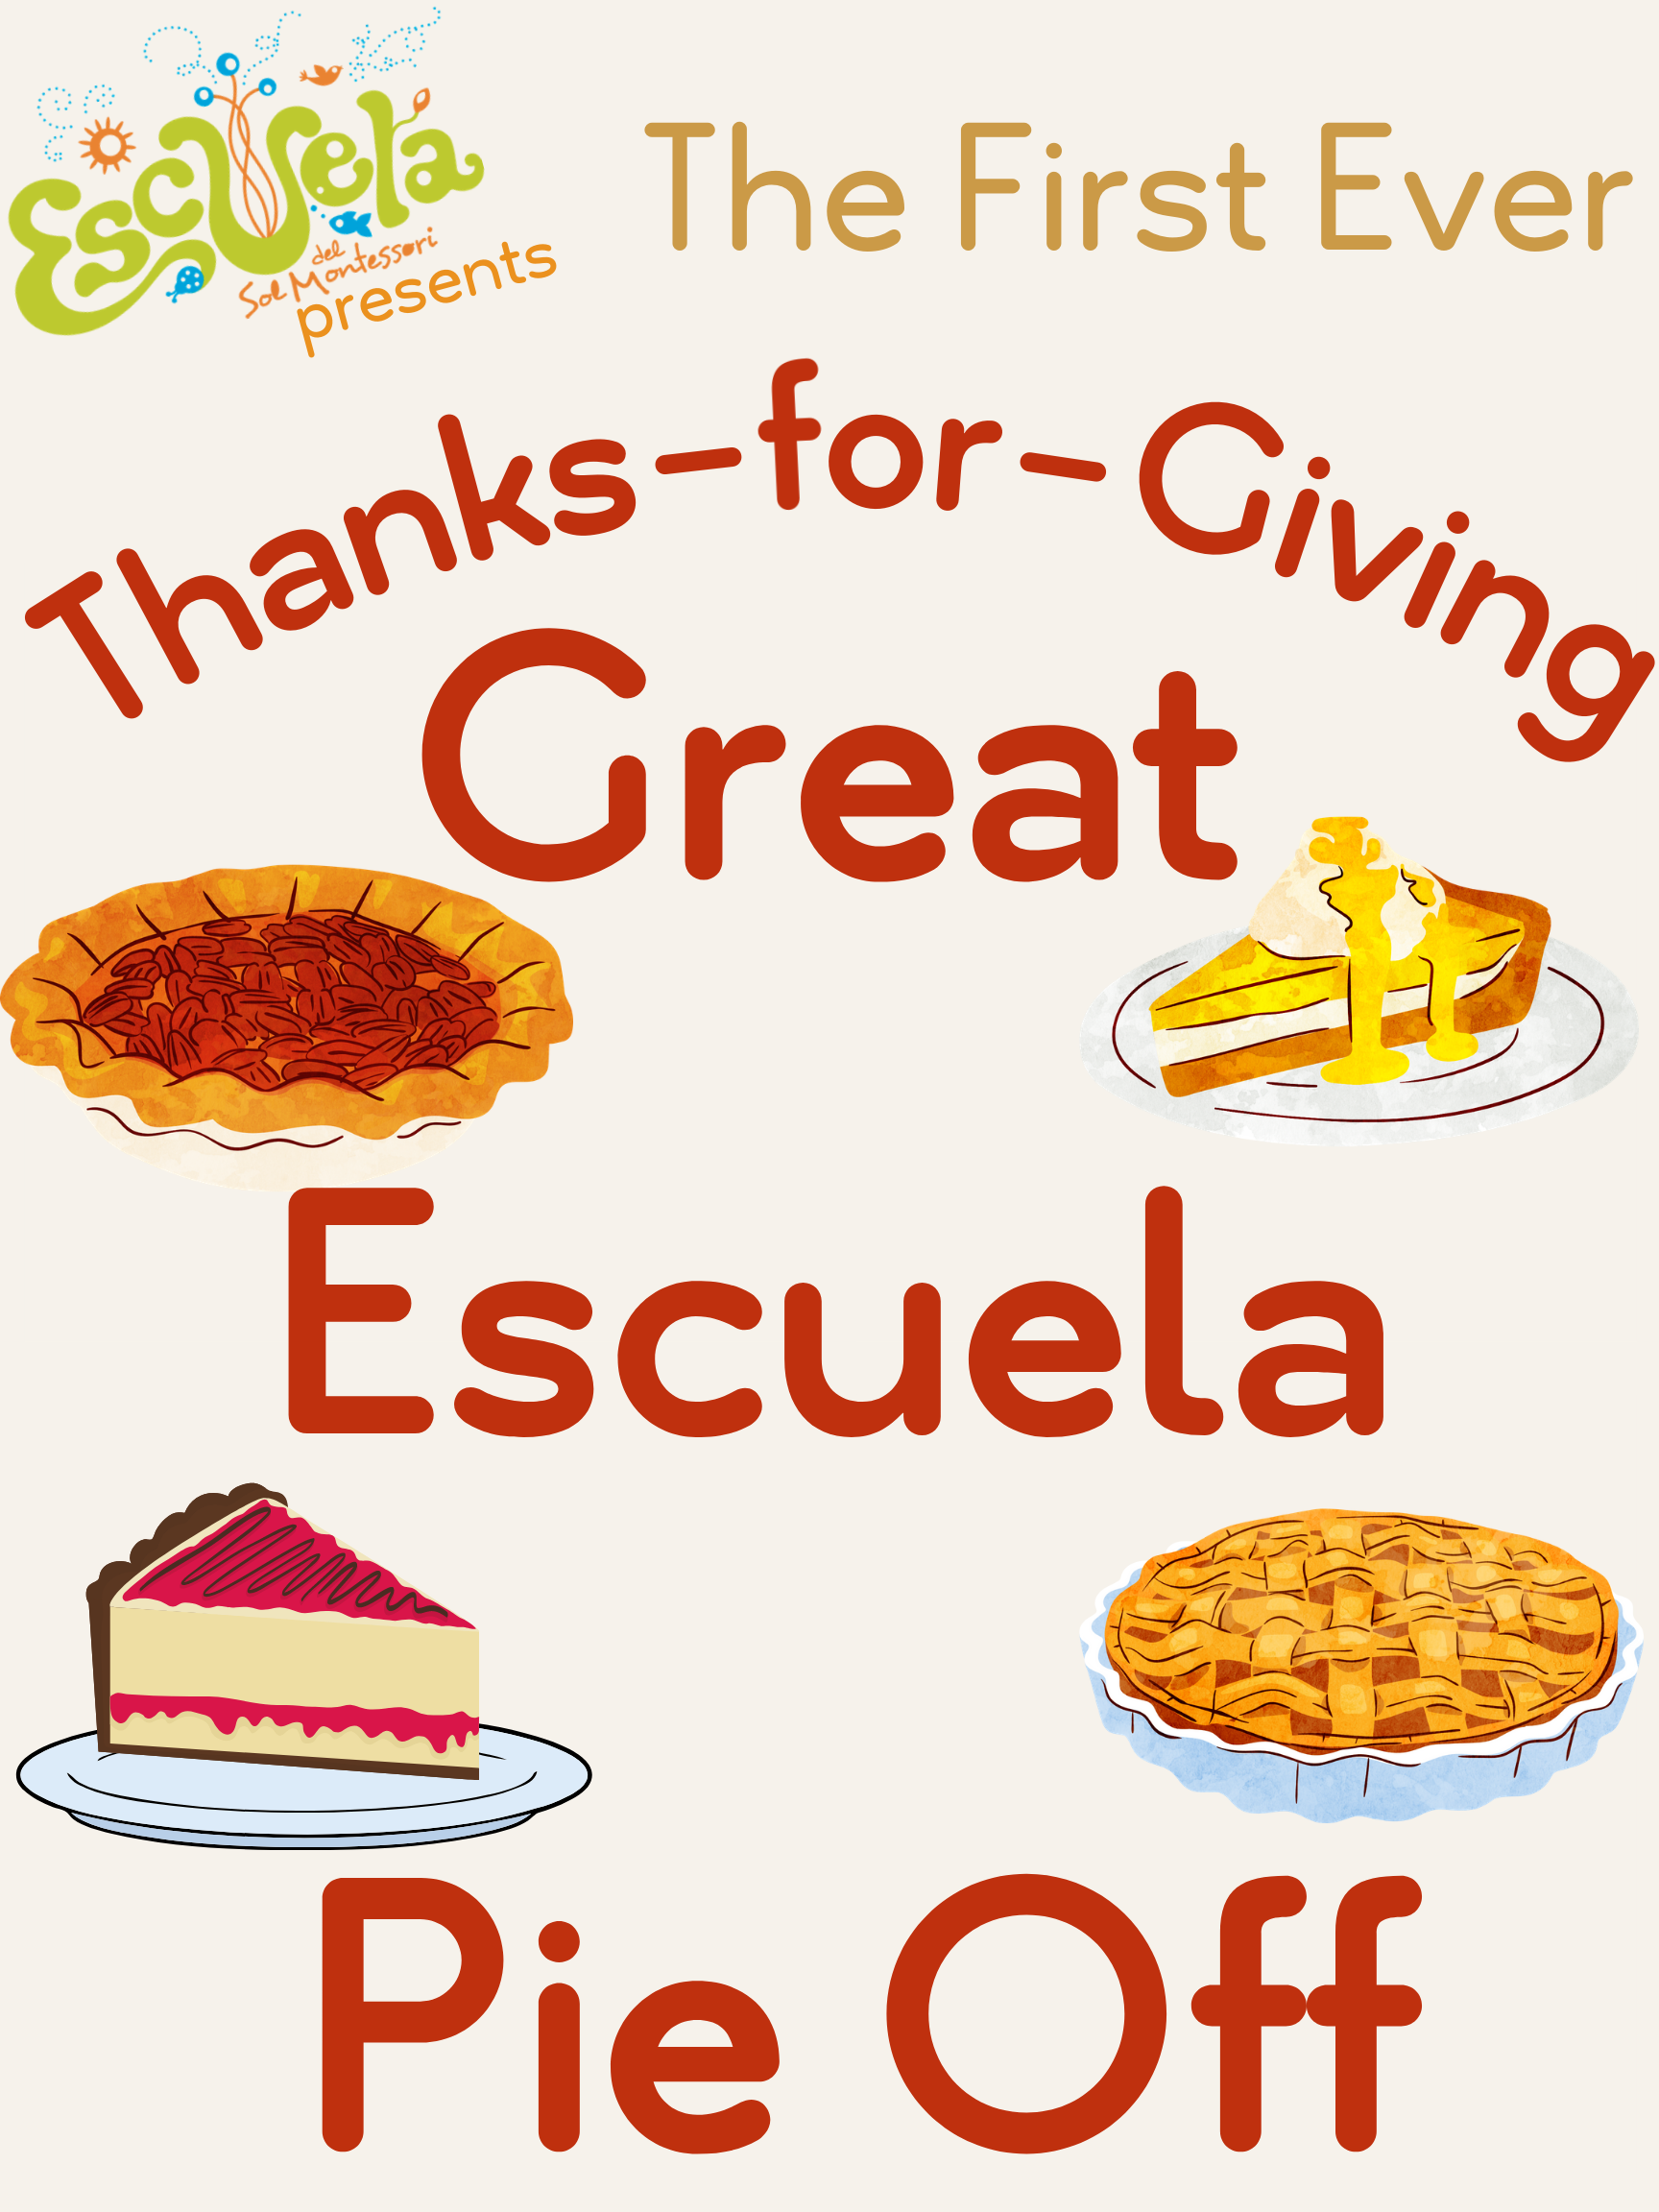 Bake Fun Memories with The Great Escuela Pie Off